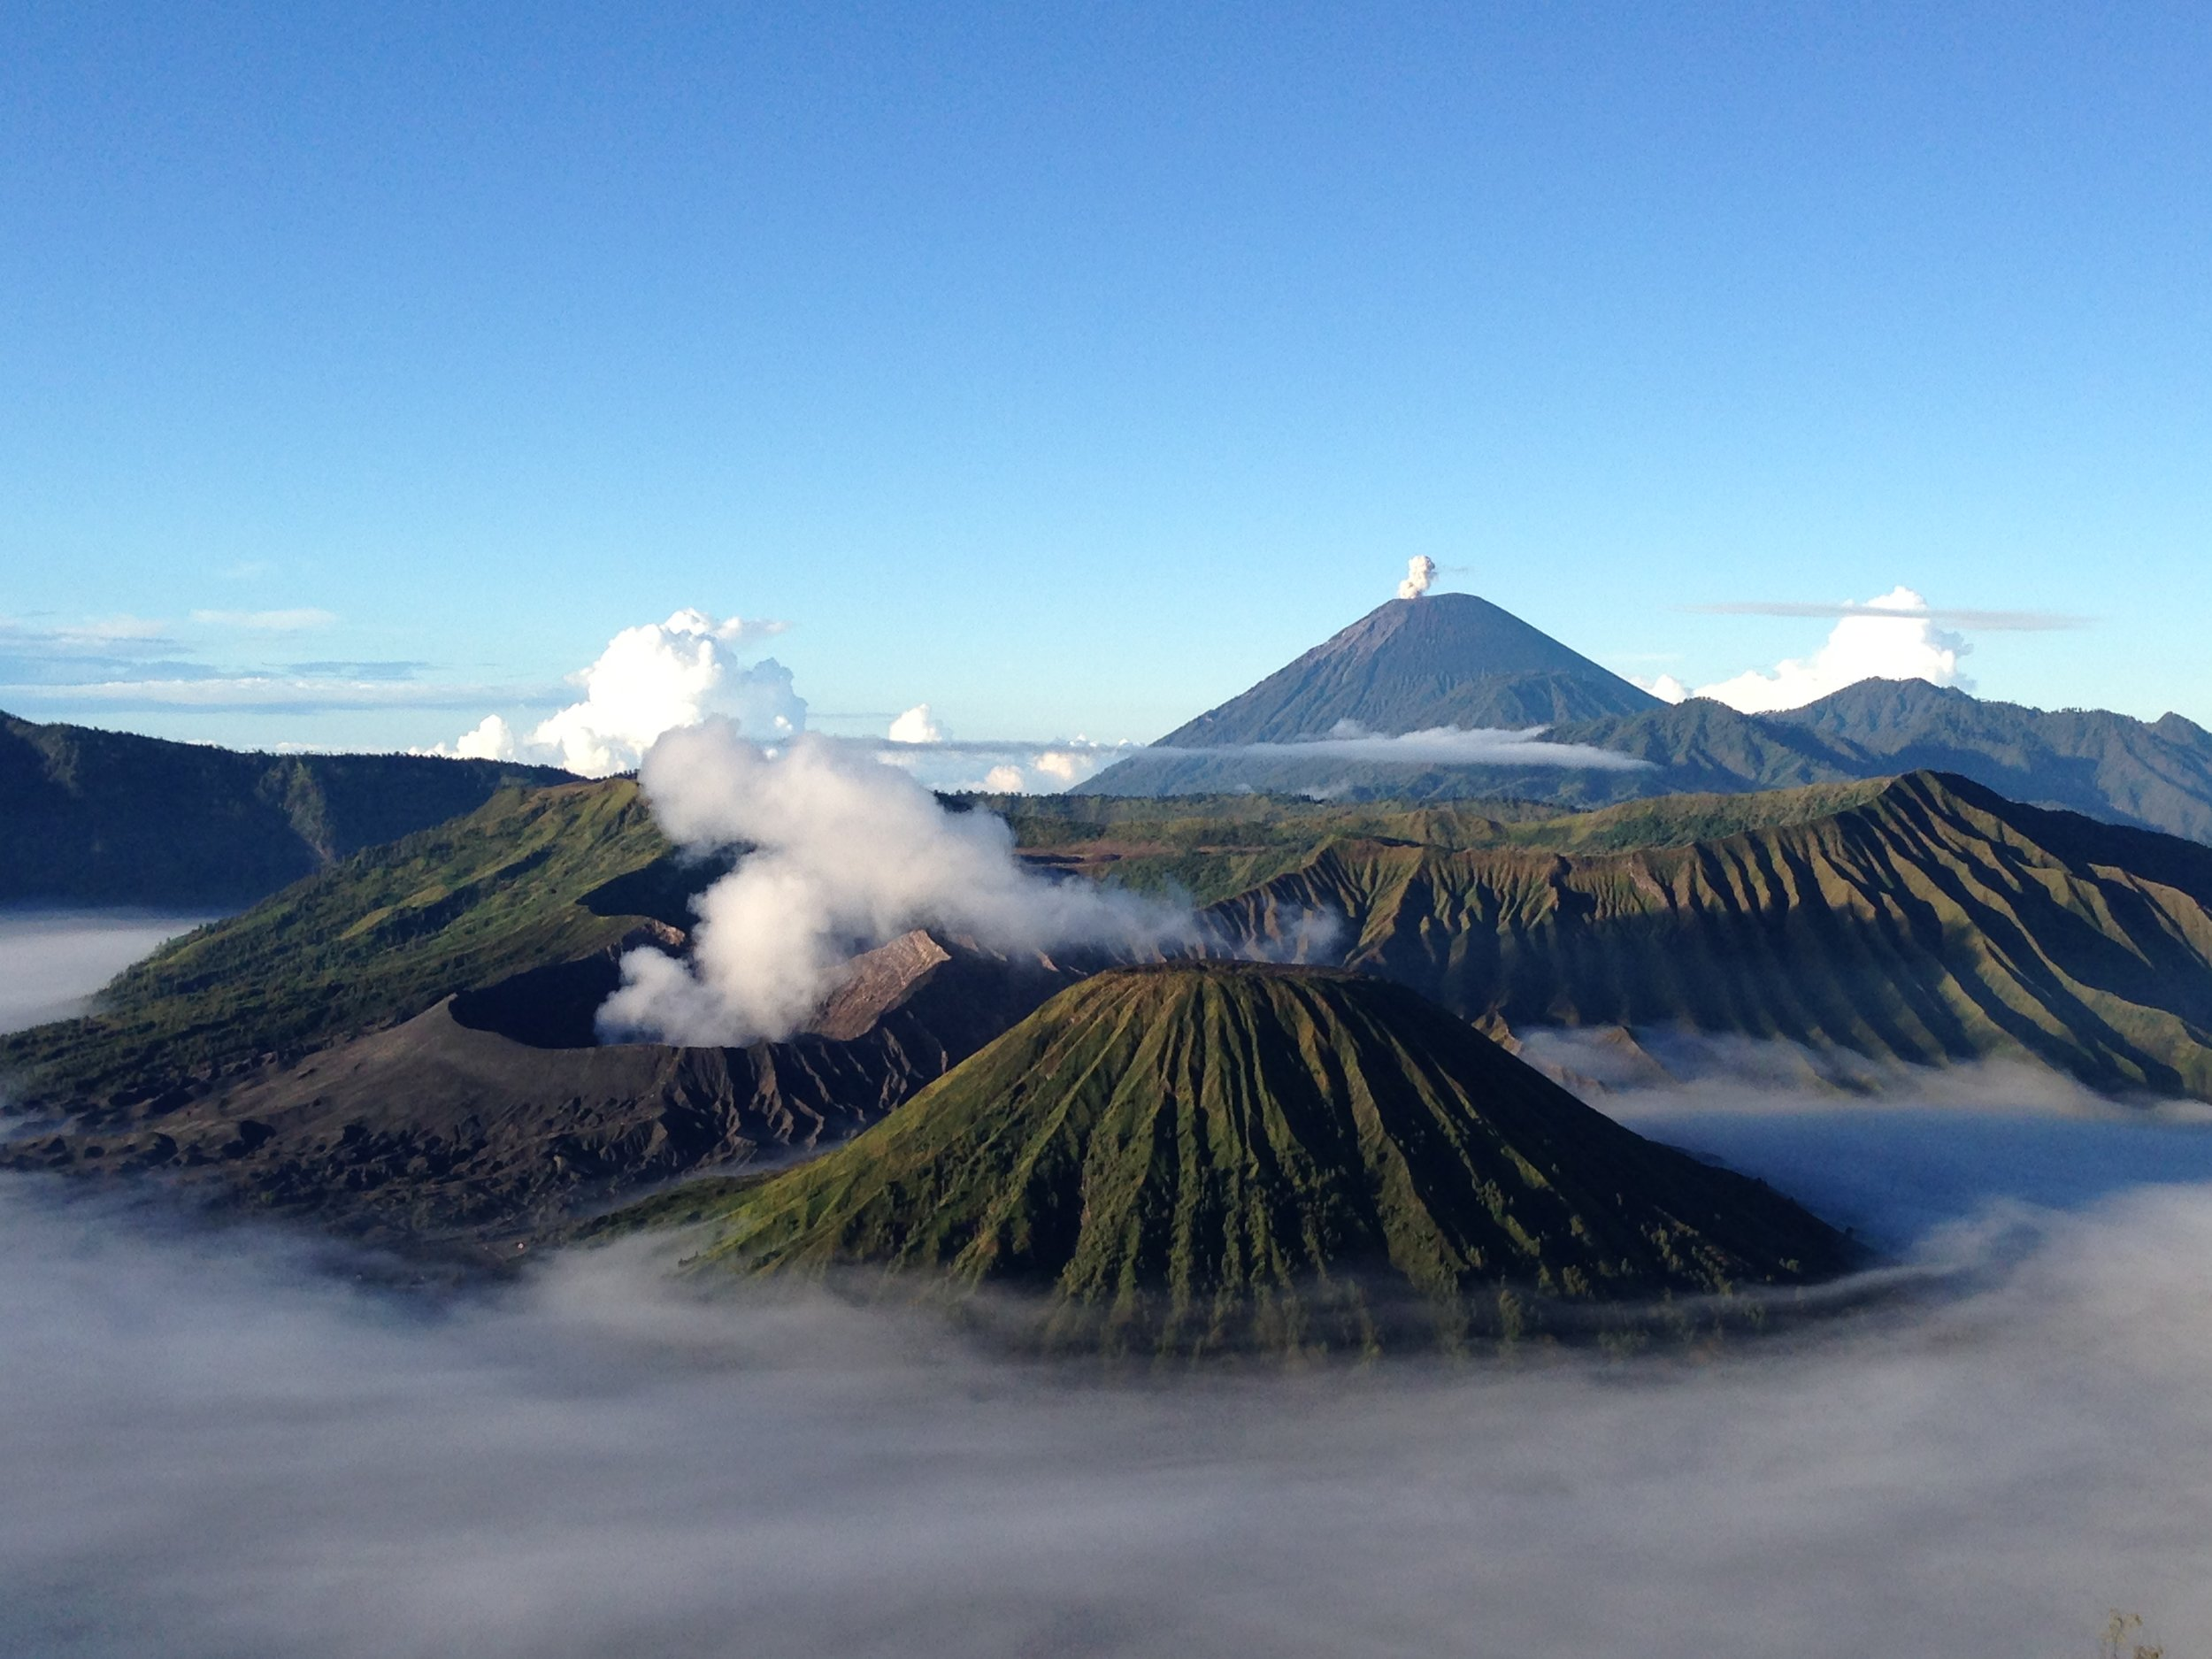 Fruits are grown around active volcanic mountains on Java island